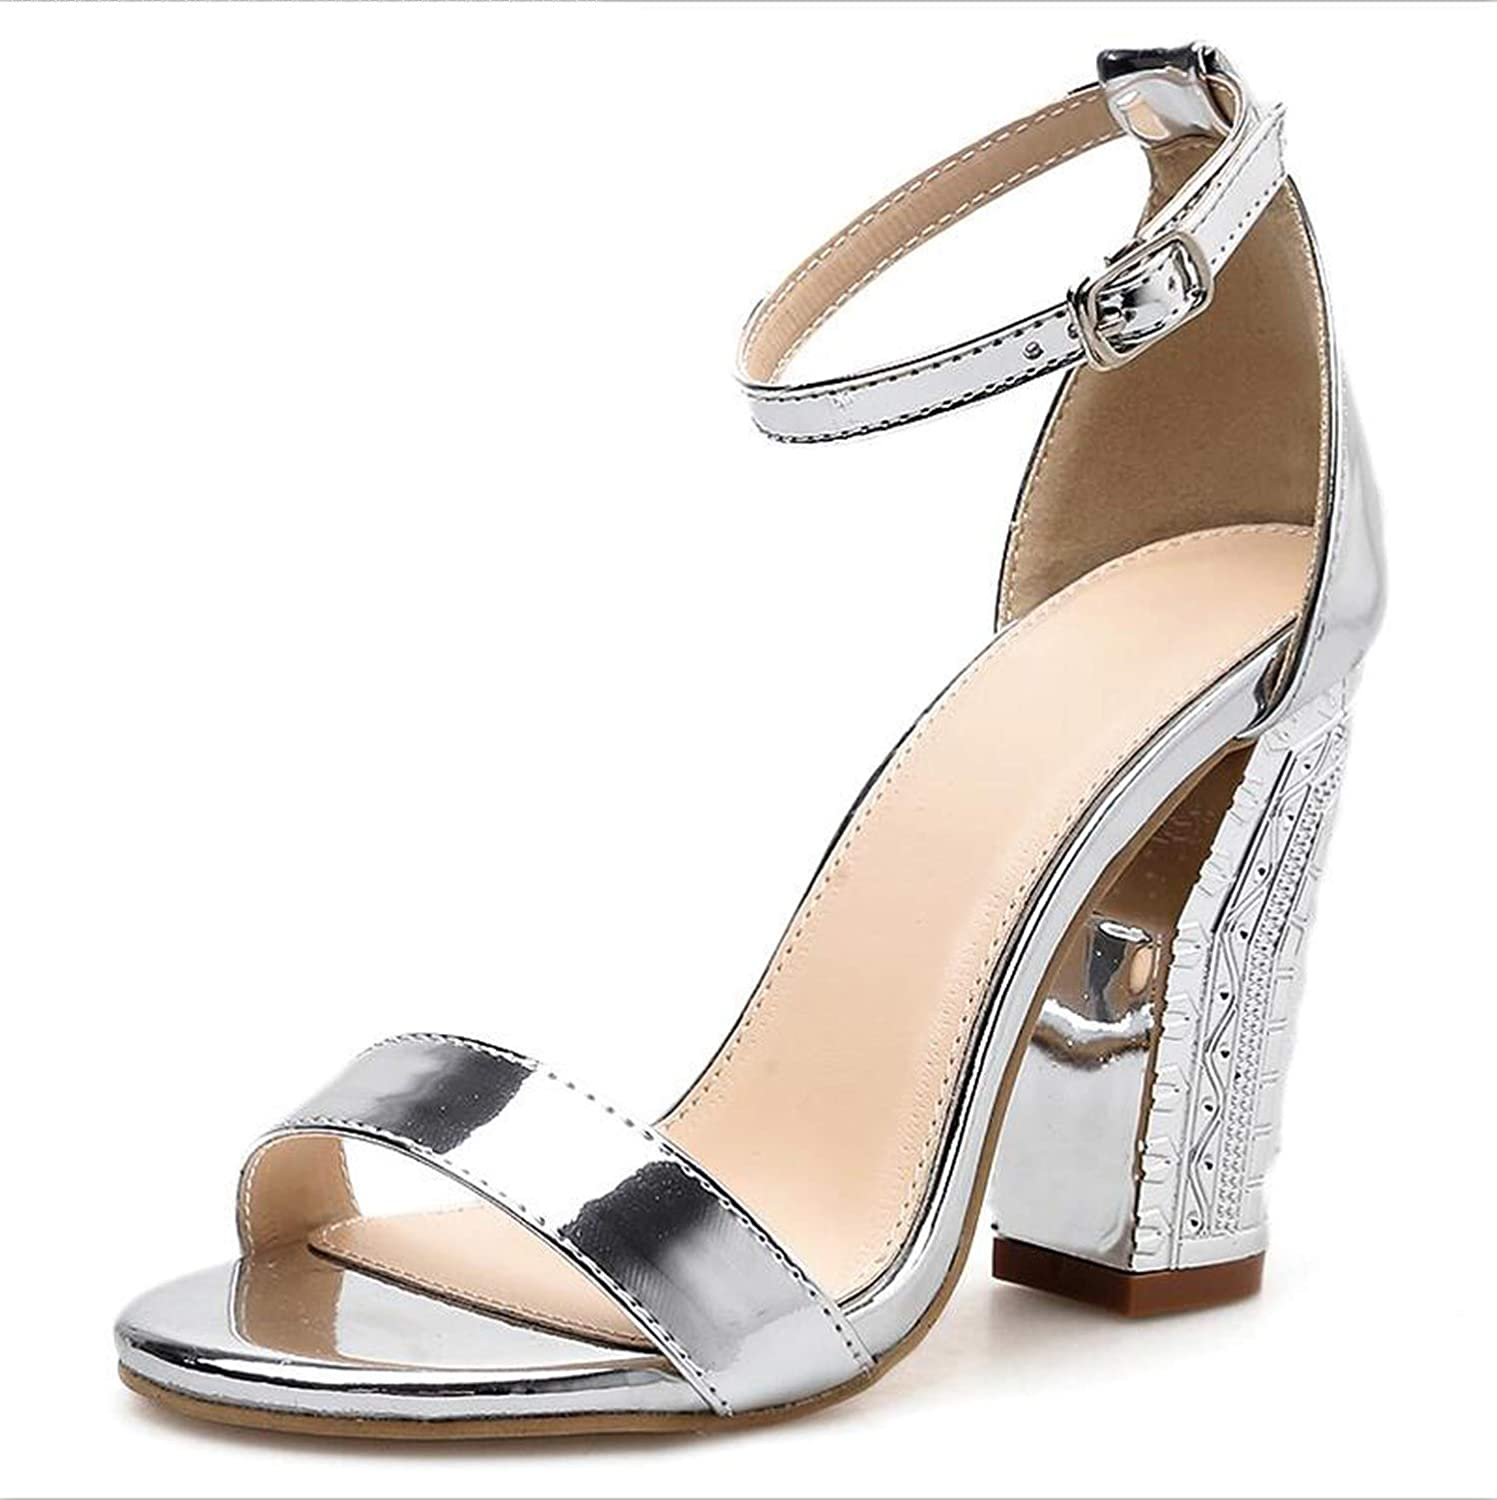 Summer Sandals Thick Square Block High Heel shoes Patent Leather Ankle Strap Pumps Dress shoes Sandalias